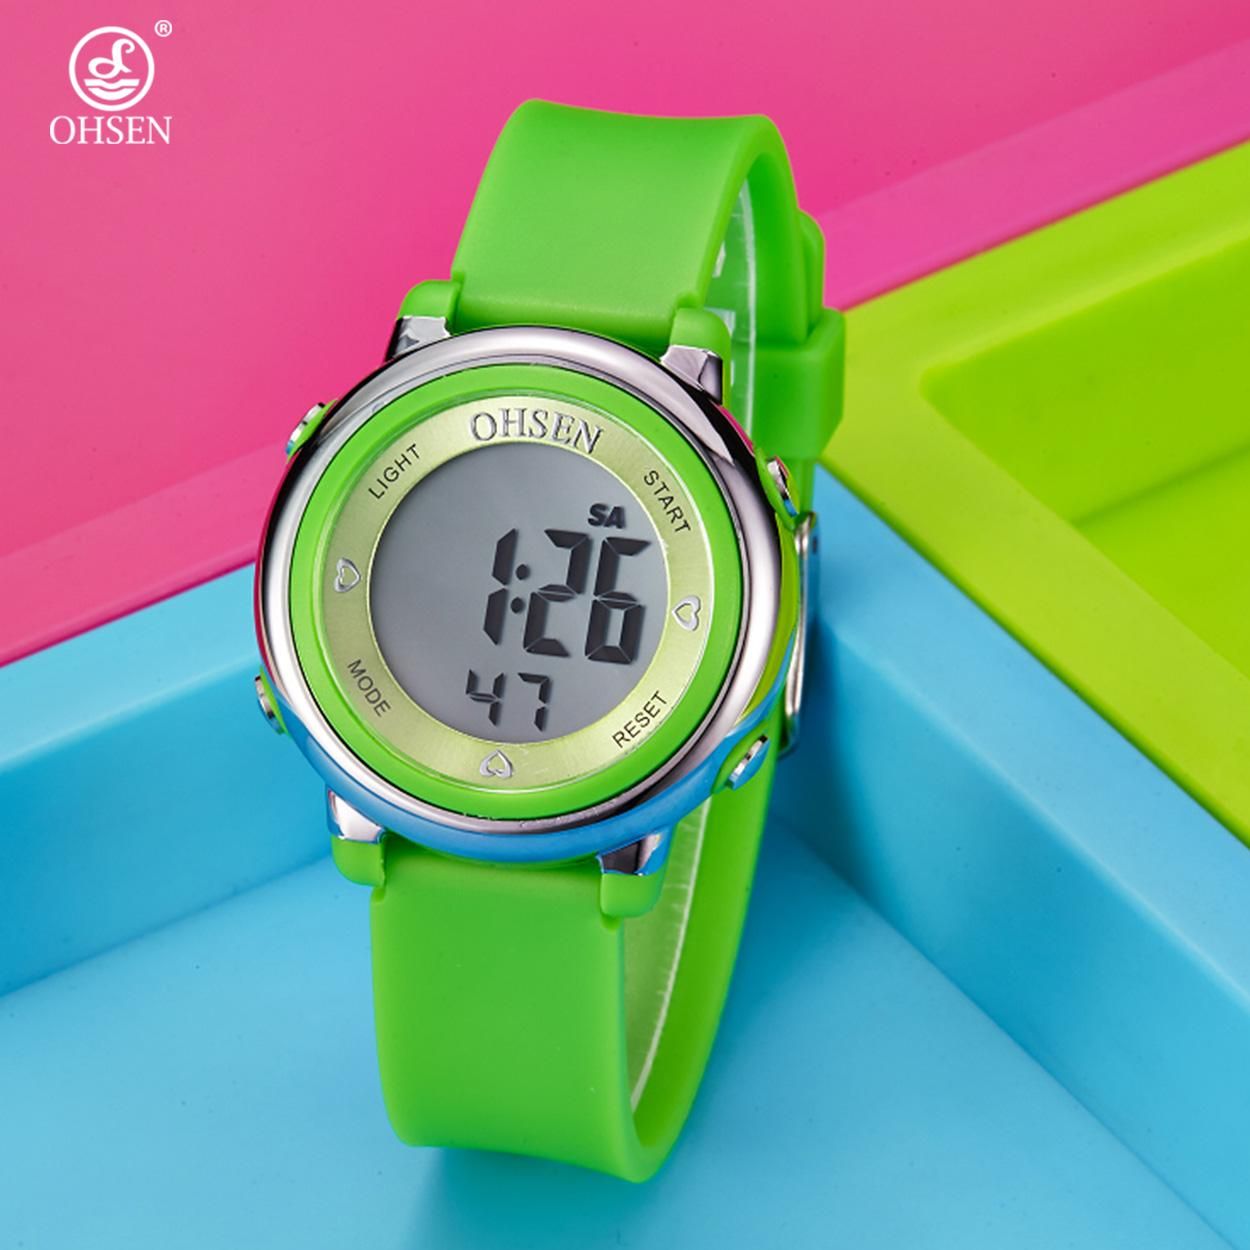 Ohsen 1605 Multi-function Water Resistant Fashionable Sports Watch (Green)